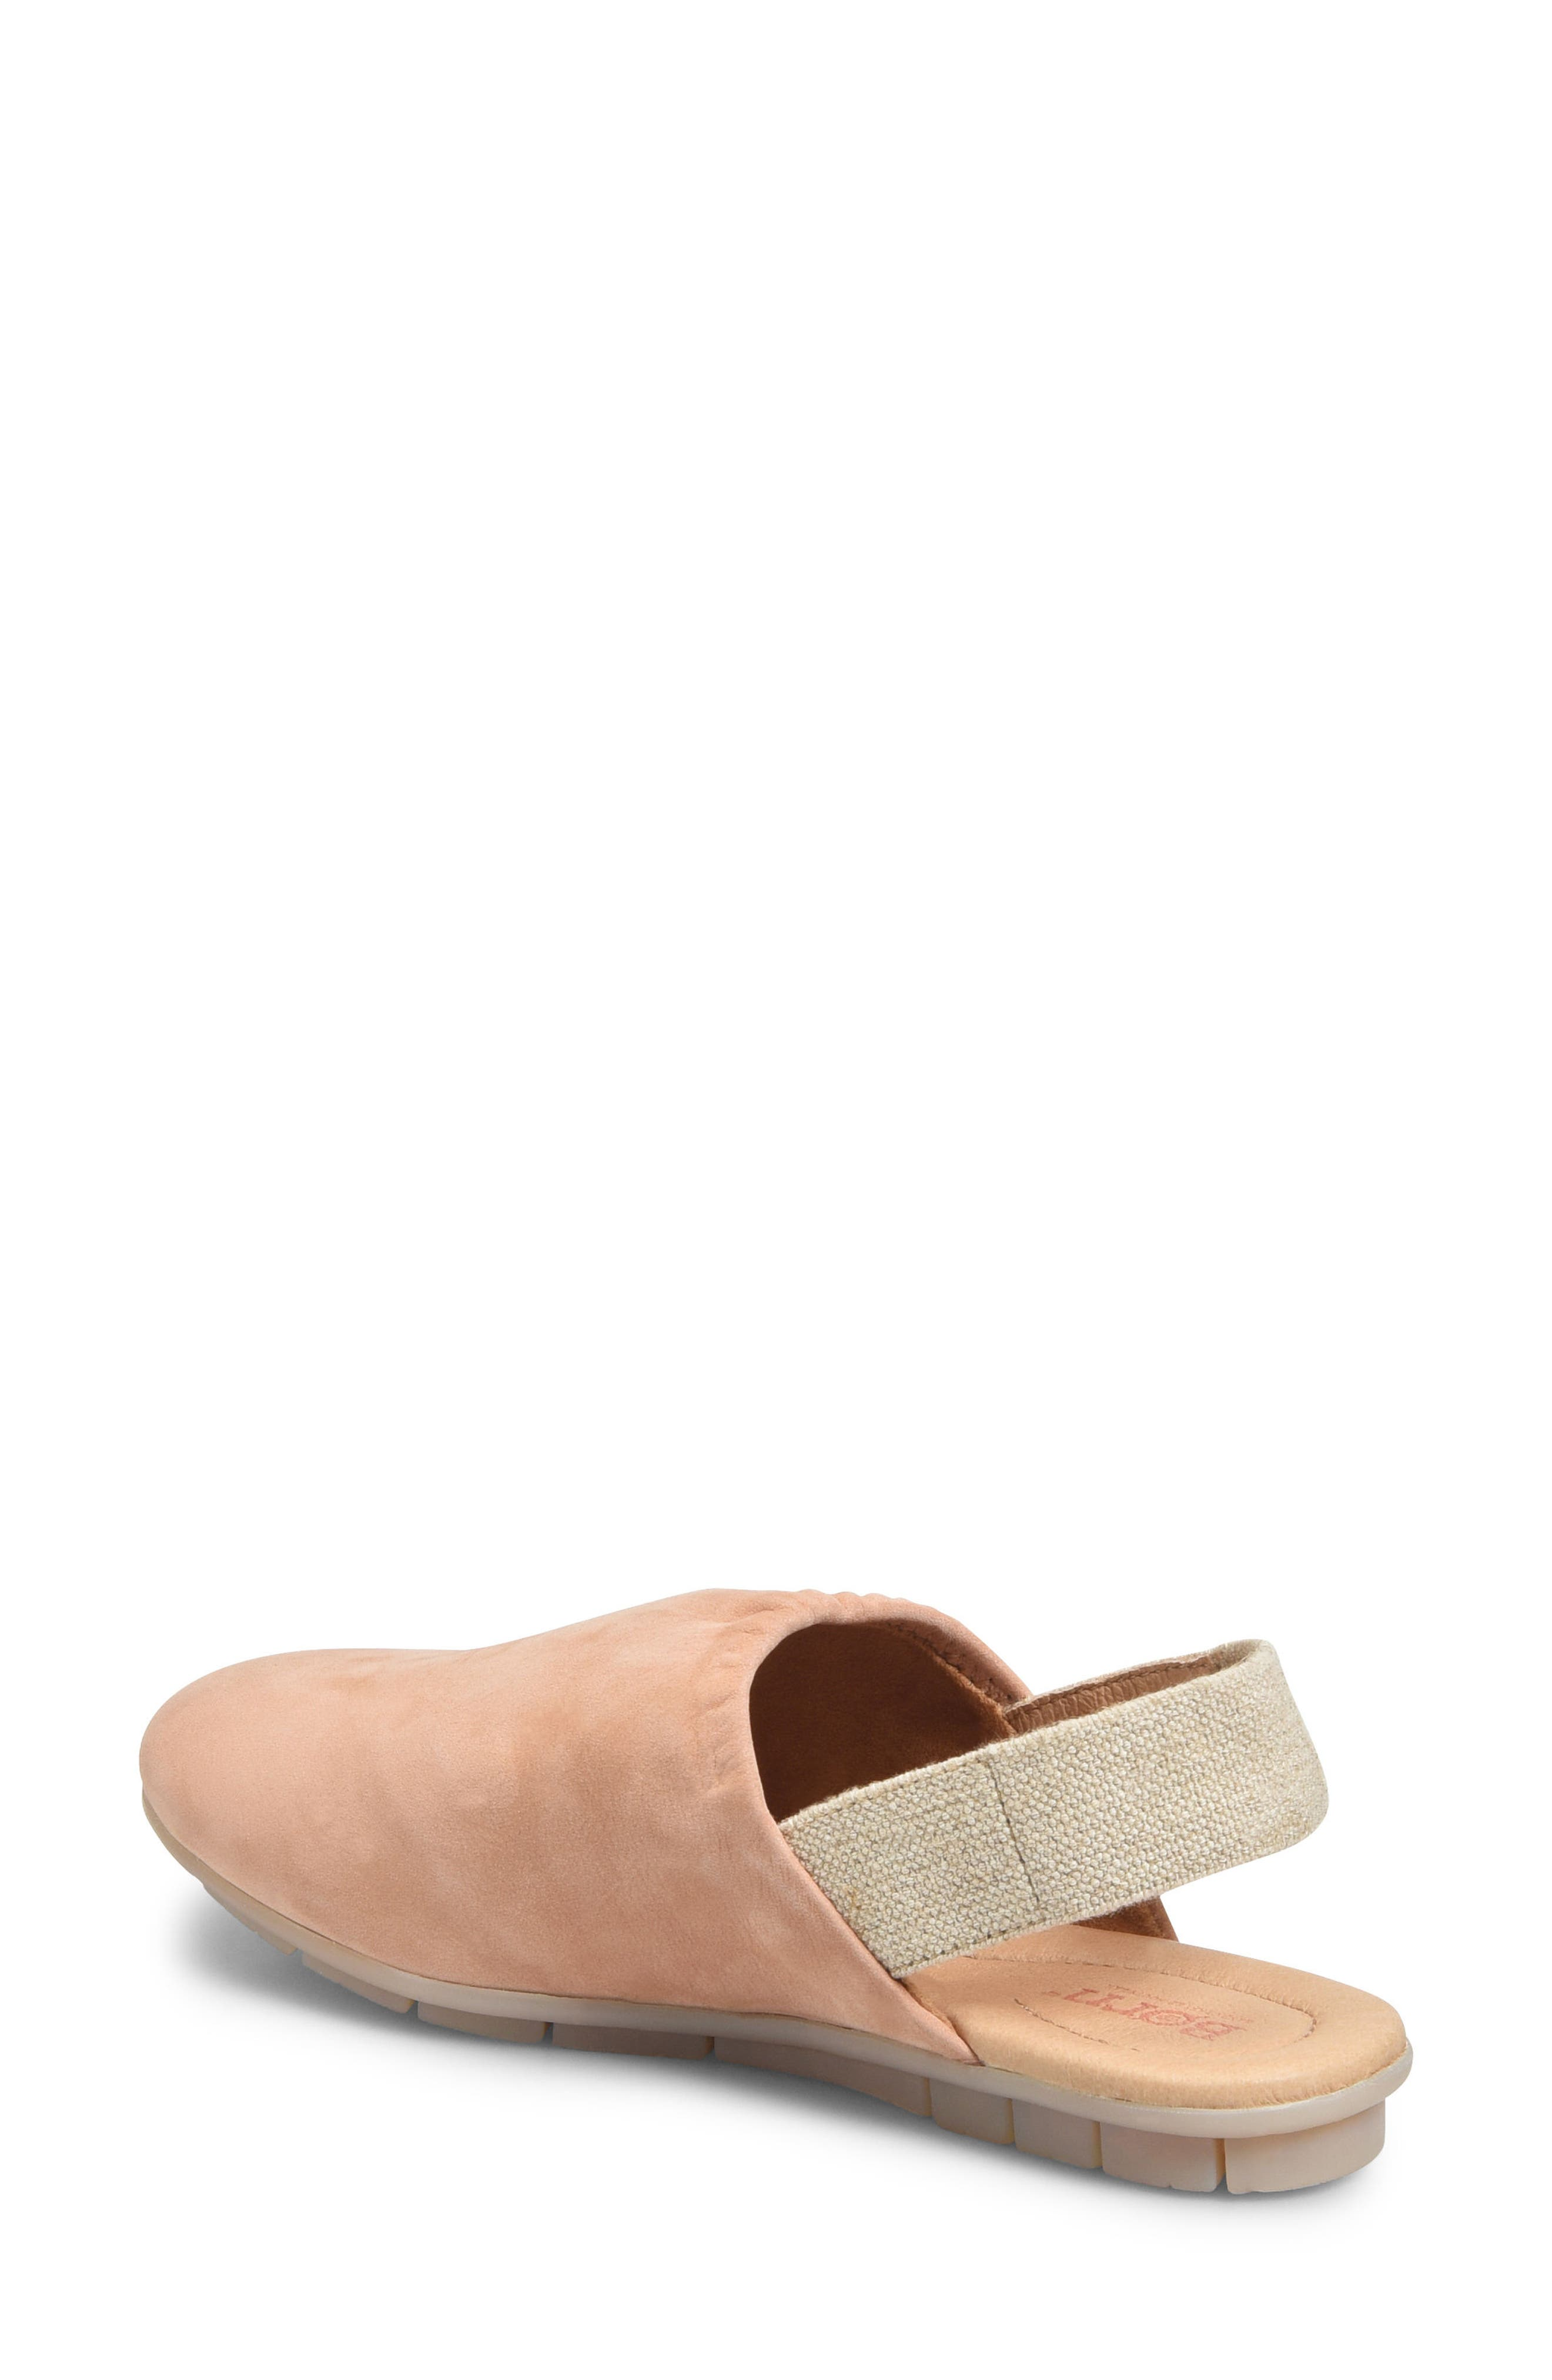 Bowe Slingback Flat,                             Alternate thumbnail 2, color,                             BLUSH NUBUCK